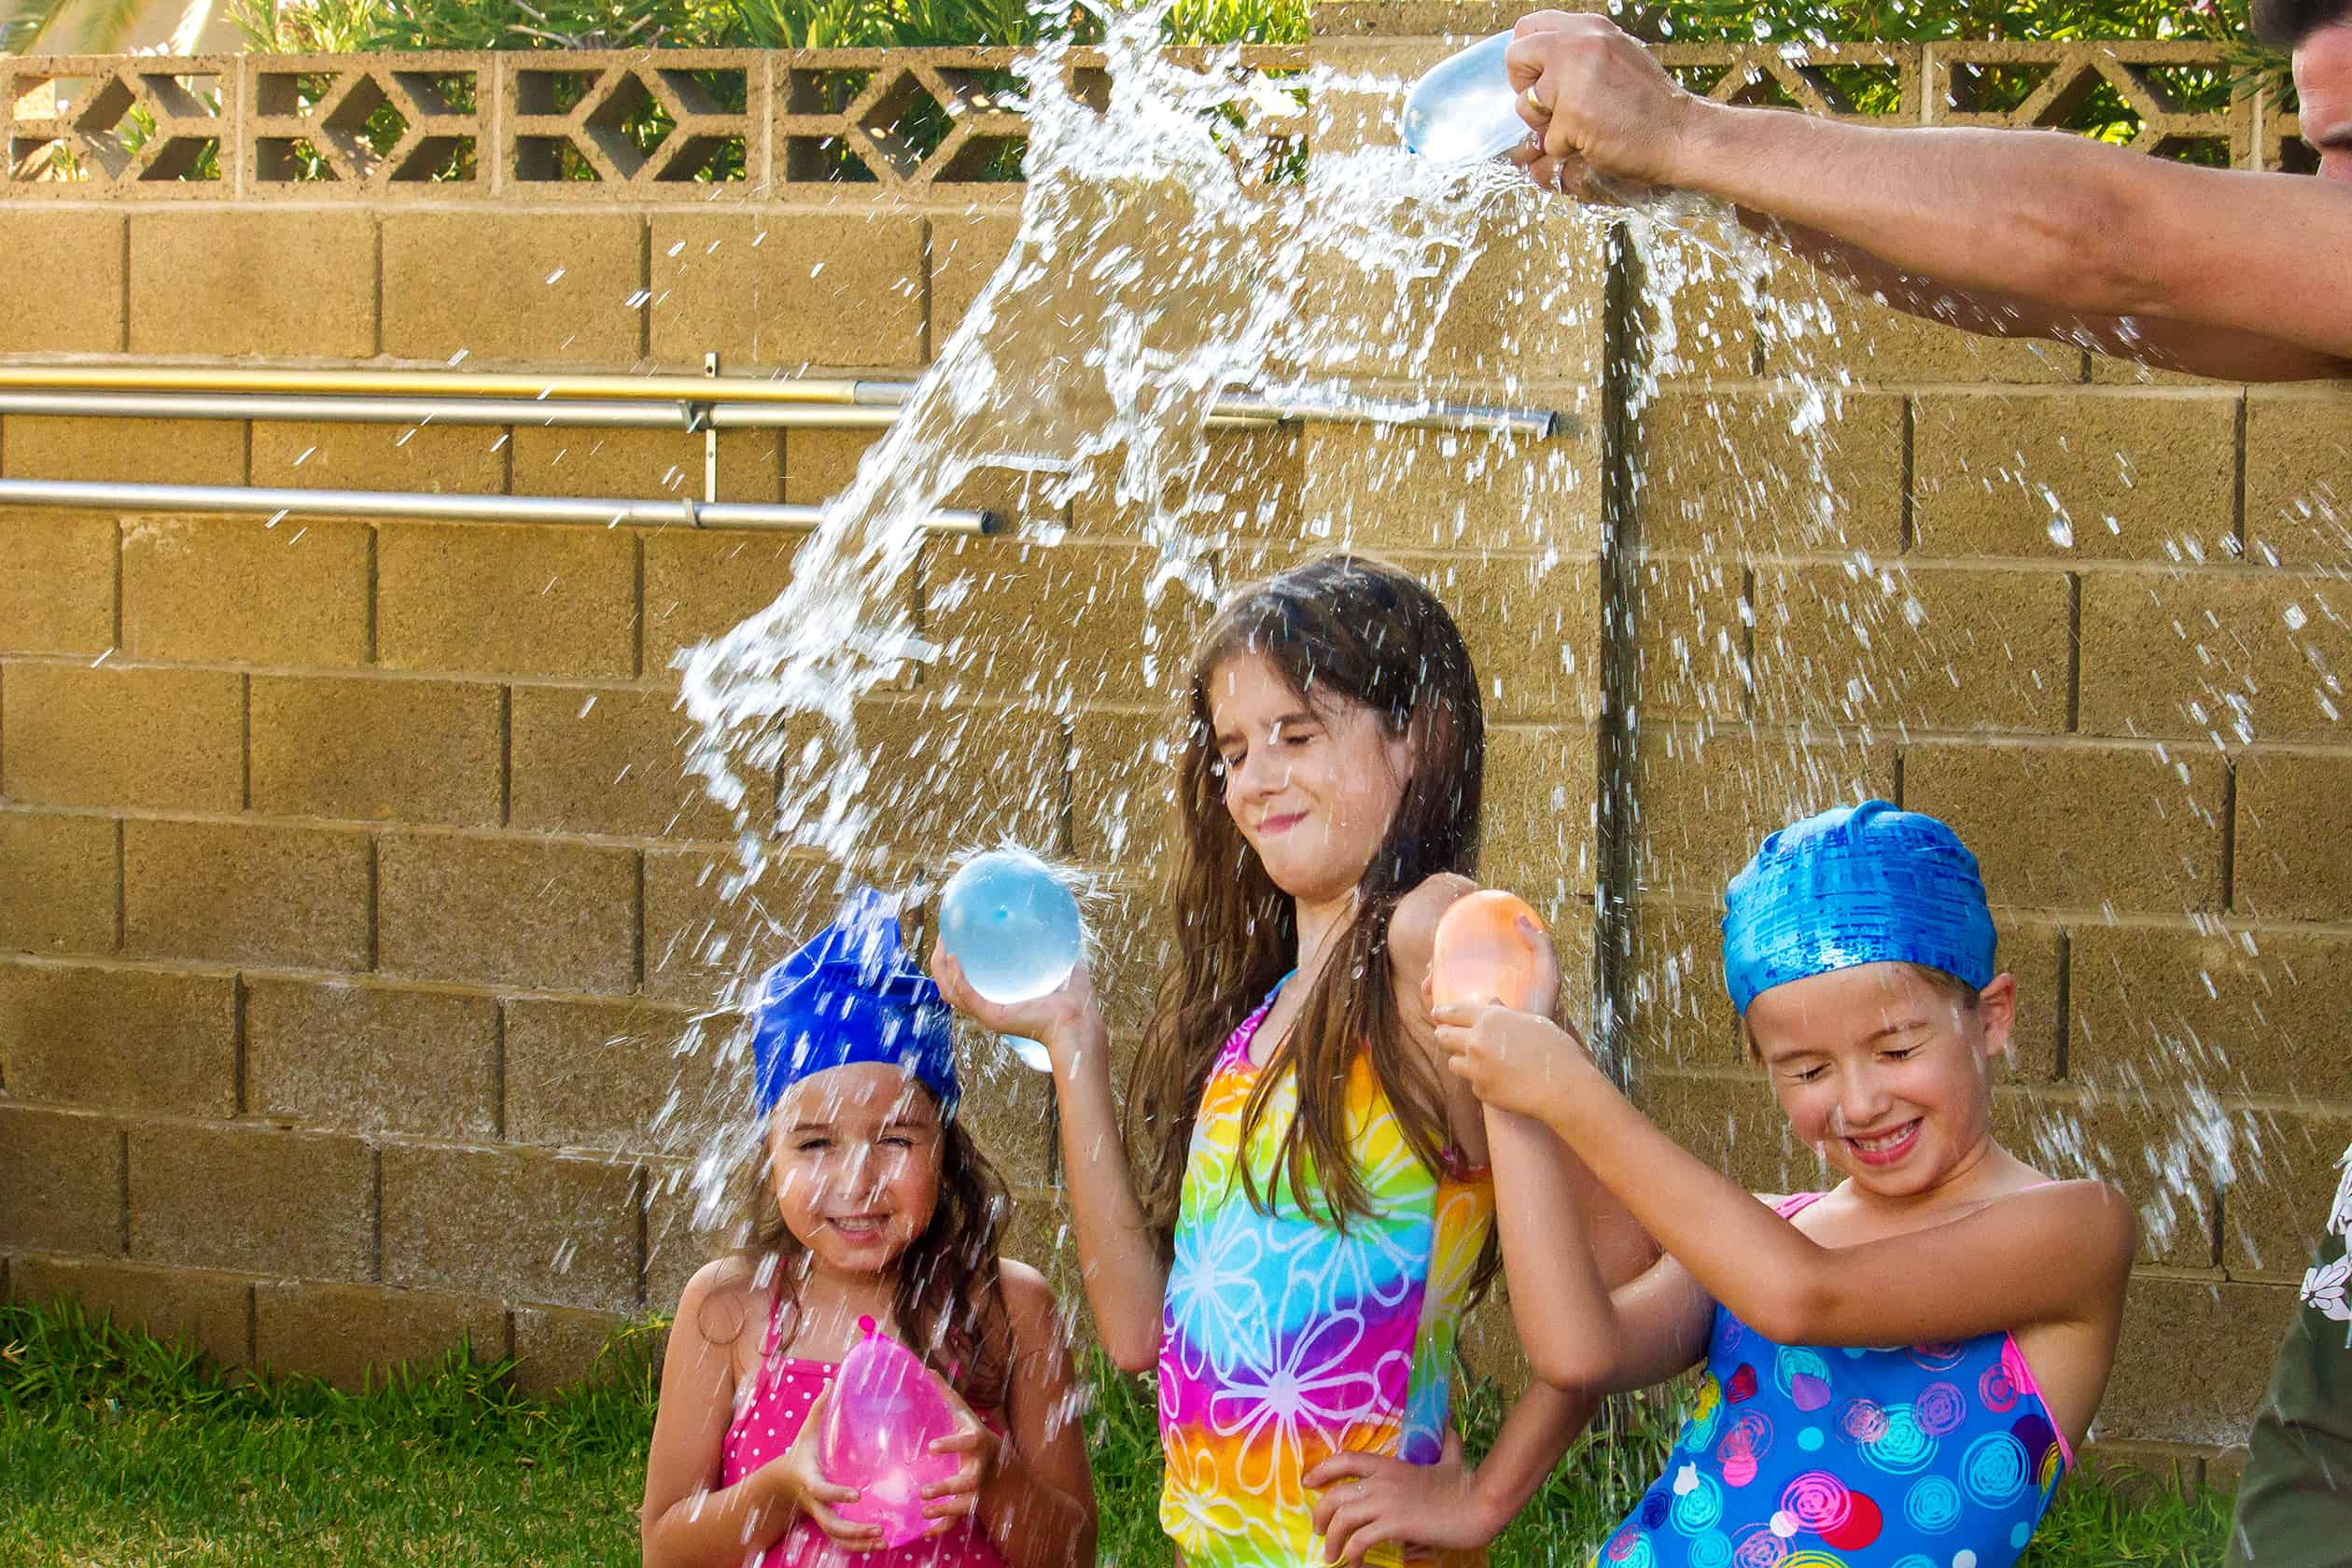 DIY water toys - Dad breaks water balloon over three girls in colorful bathing suits and swim caps holding water balloons